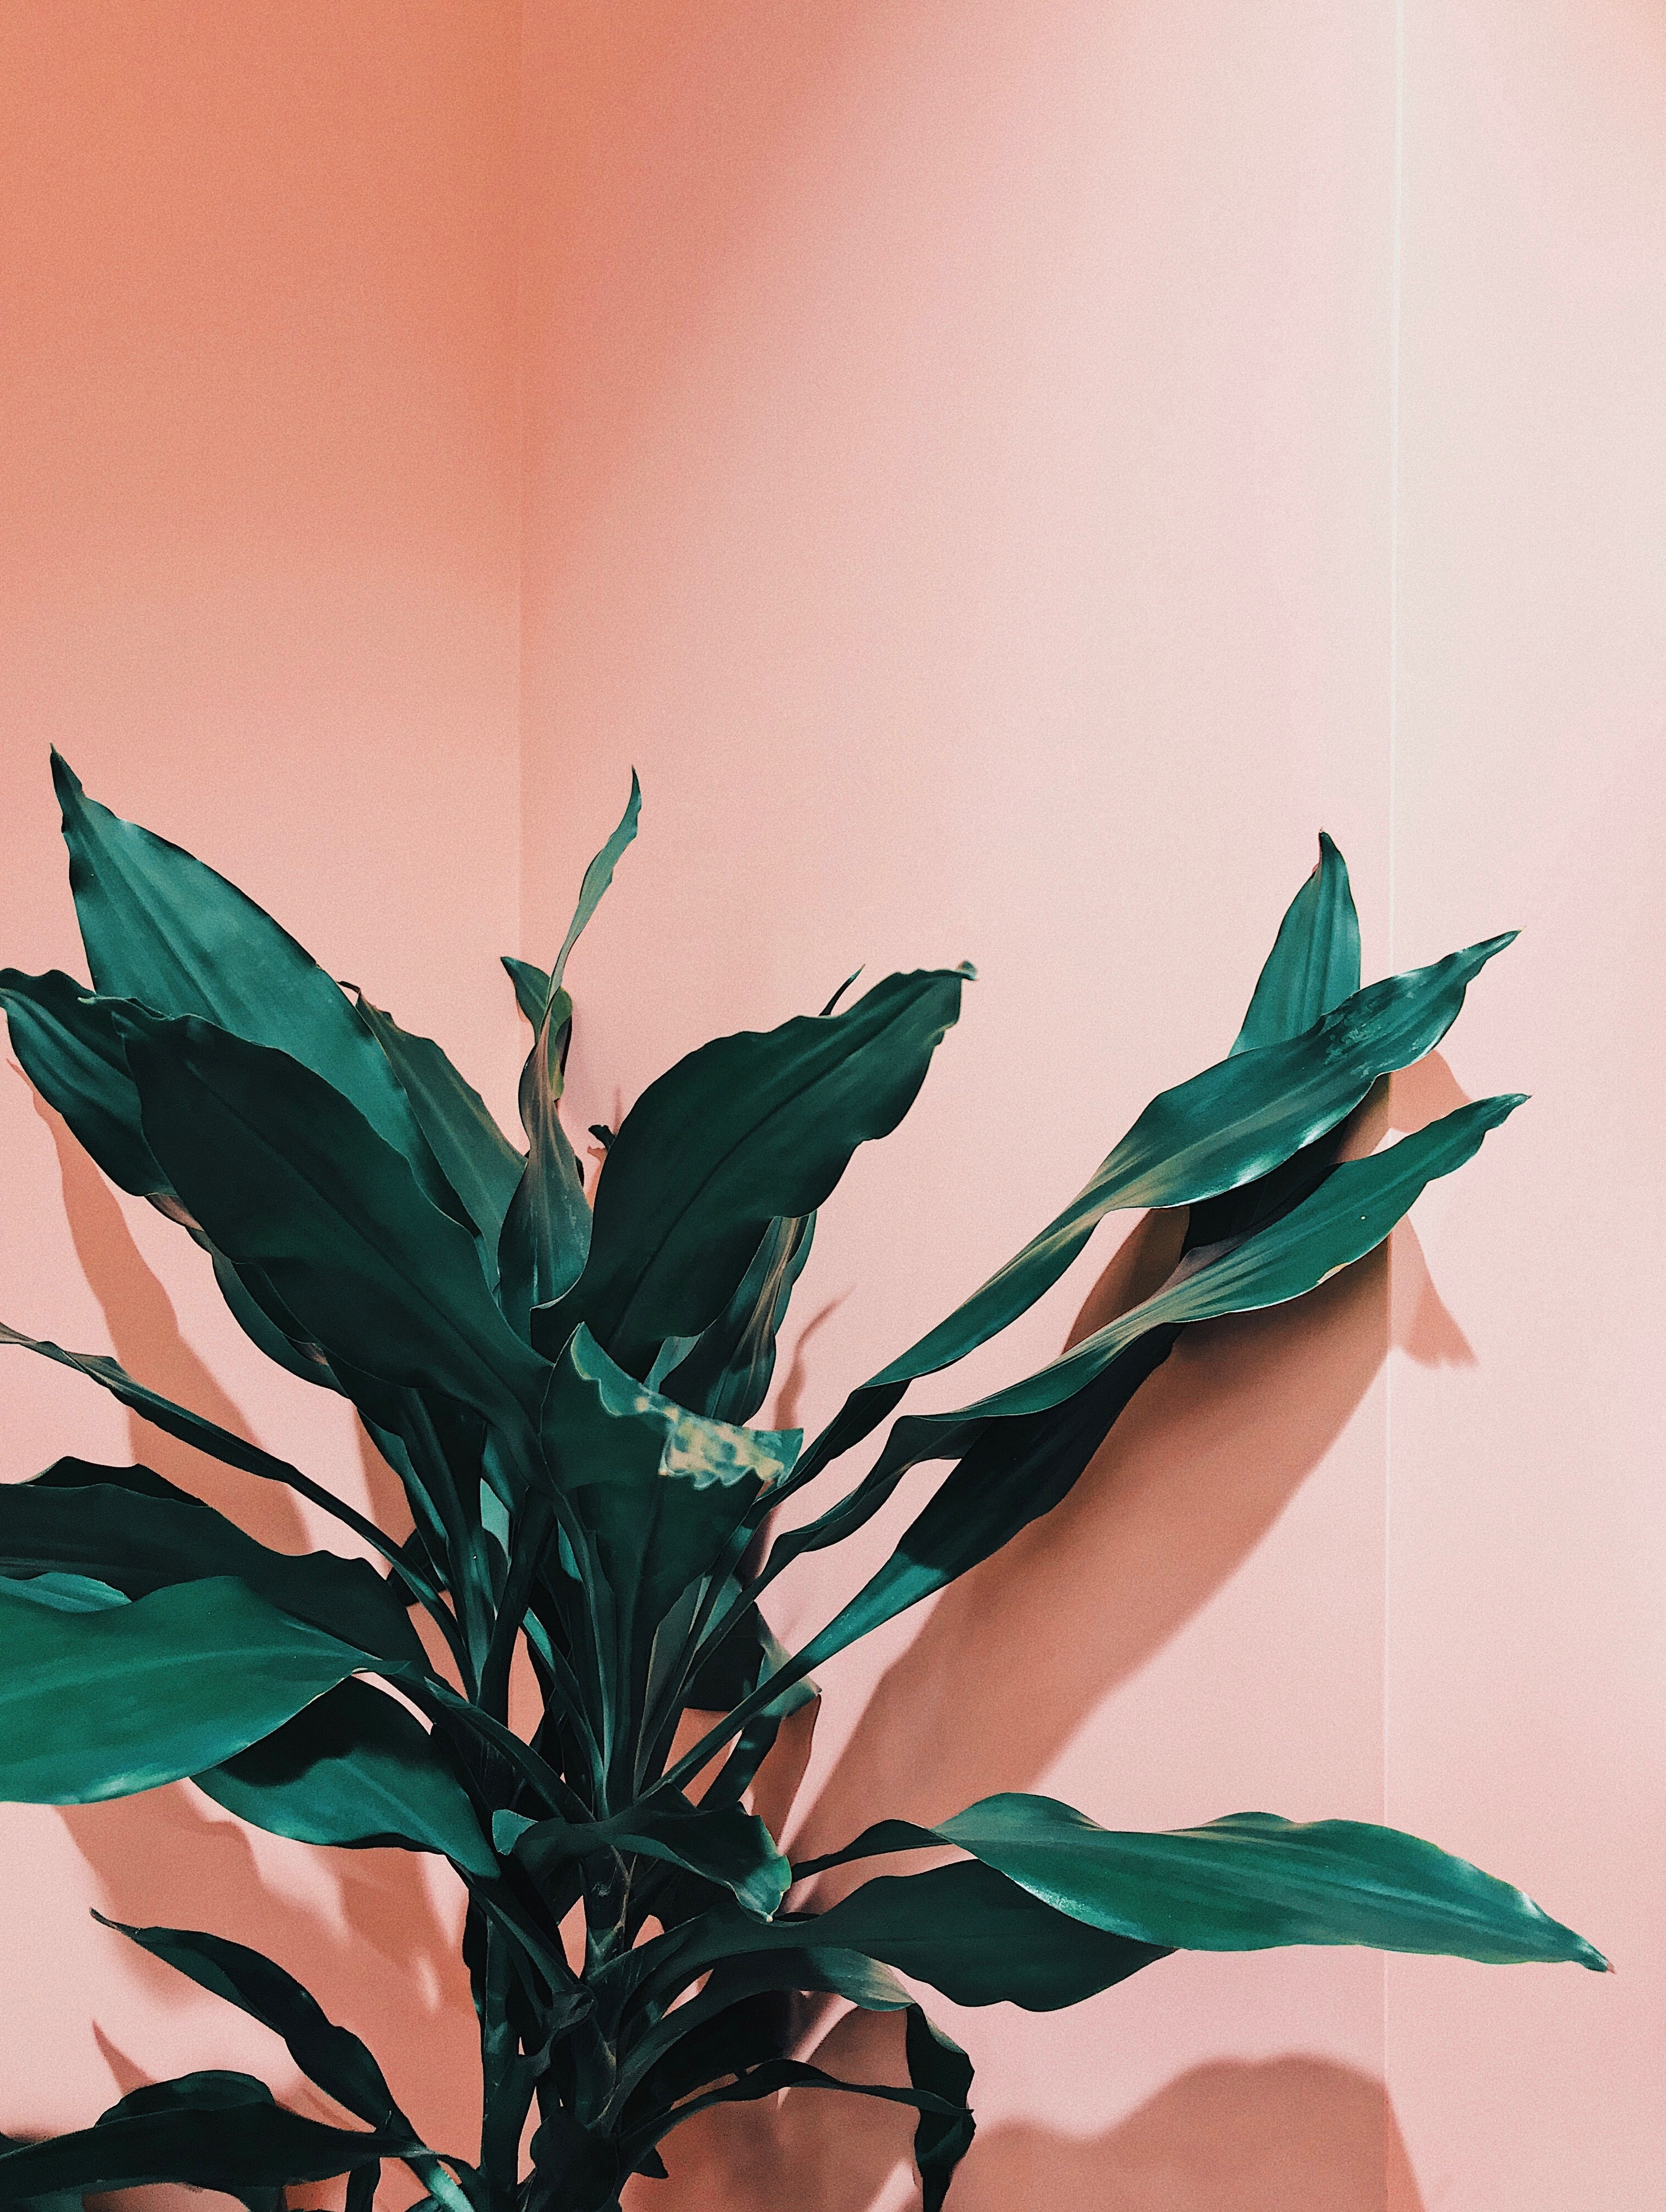 green-leafed plant at the corner of the room